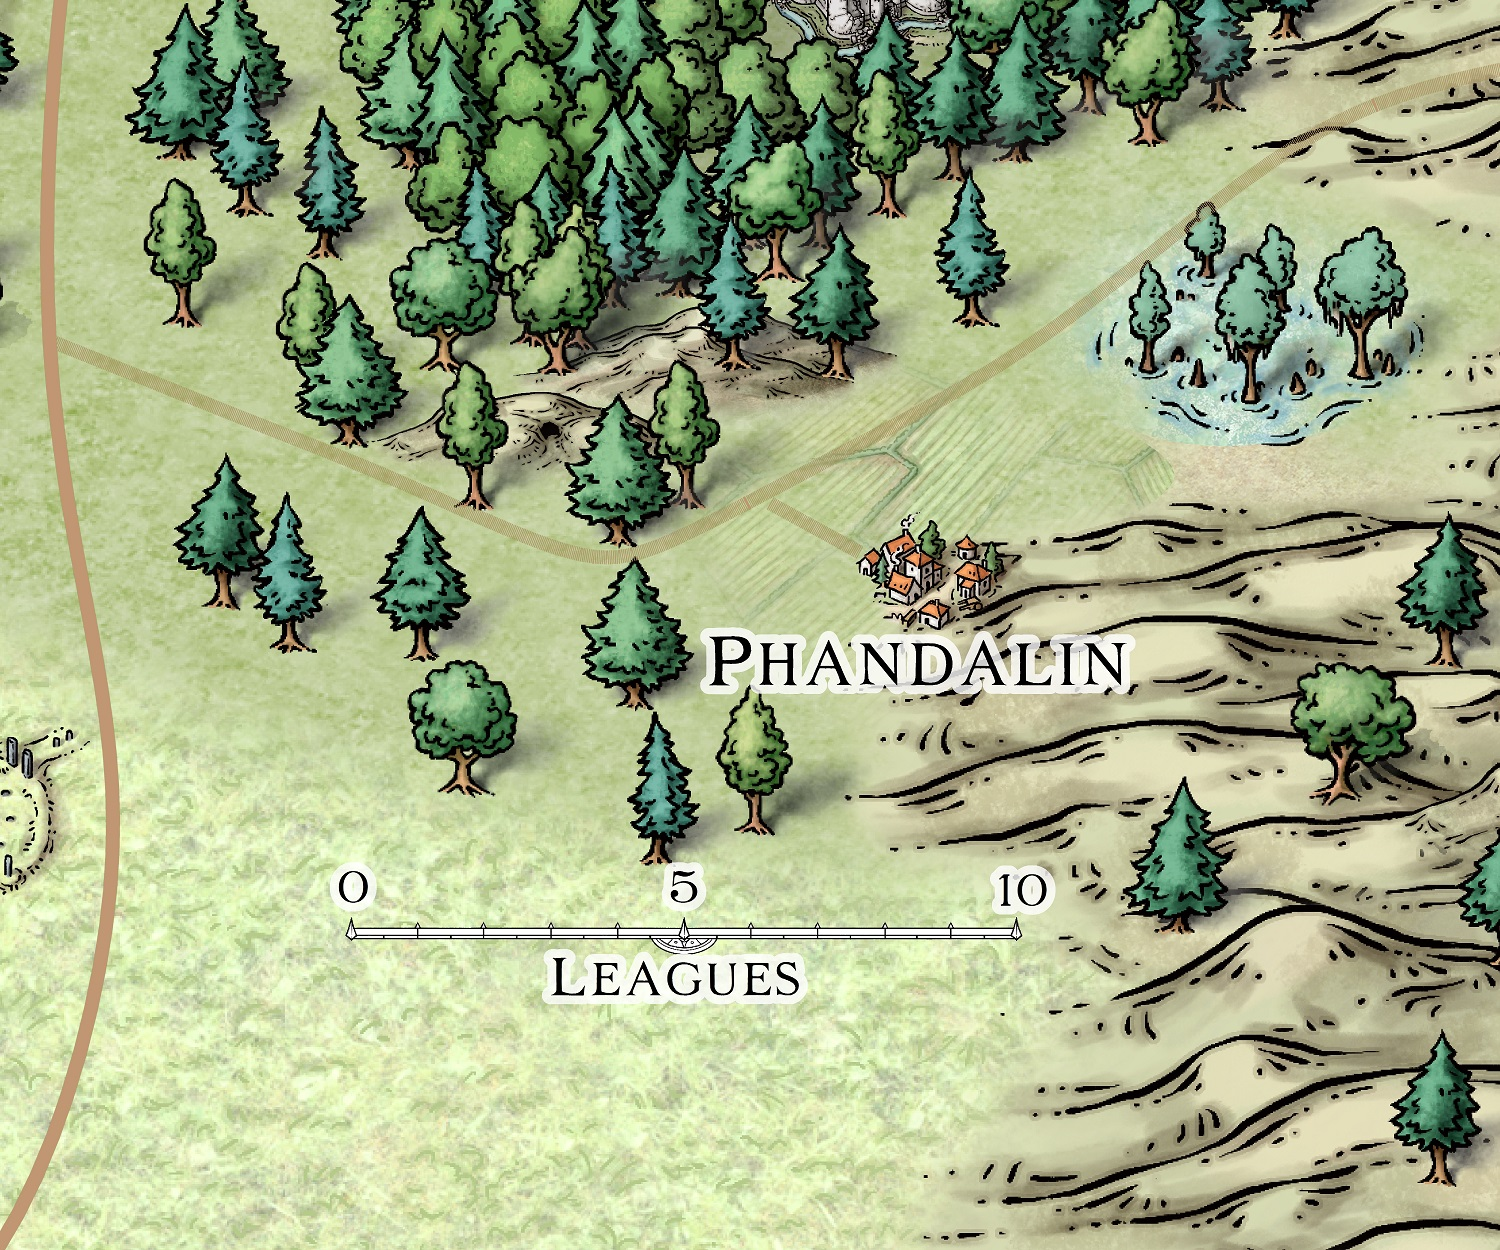 Phandalin_Area_sm_withScale.jpg